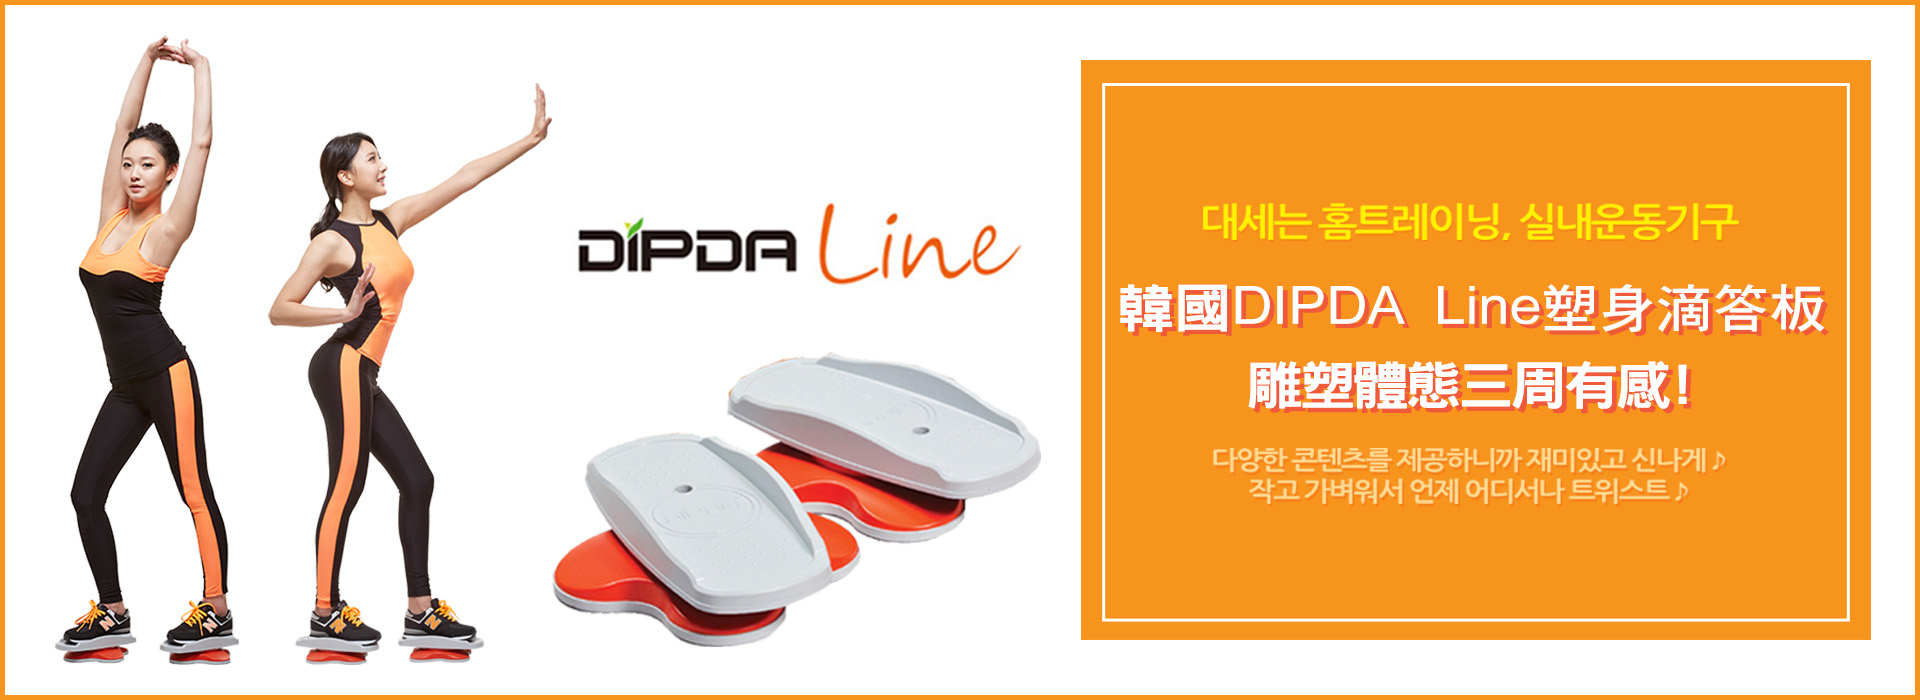 https://www.go2smart.com/products/dipda-line